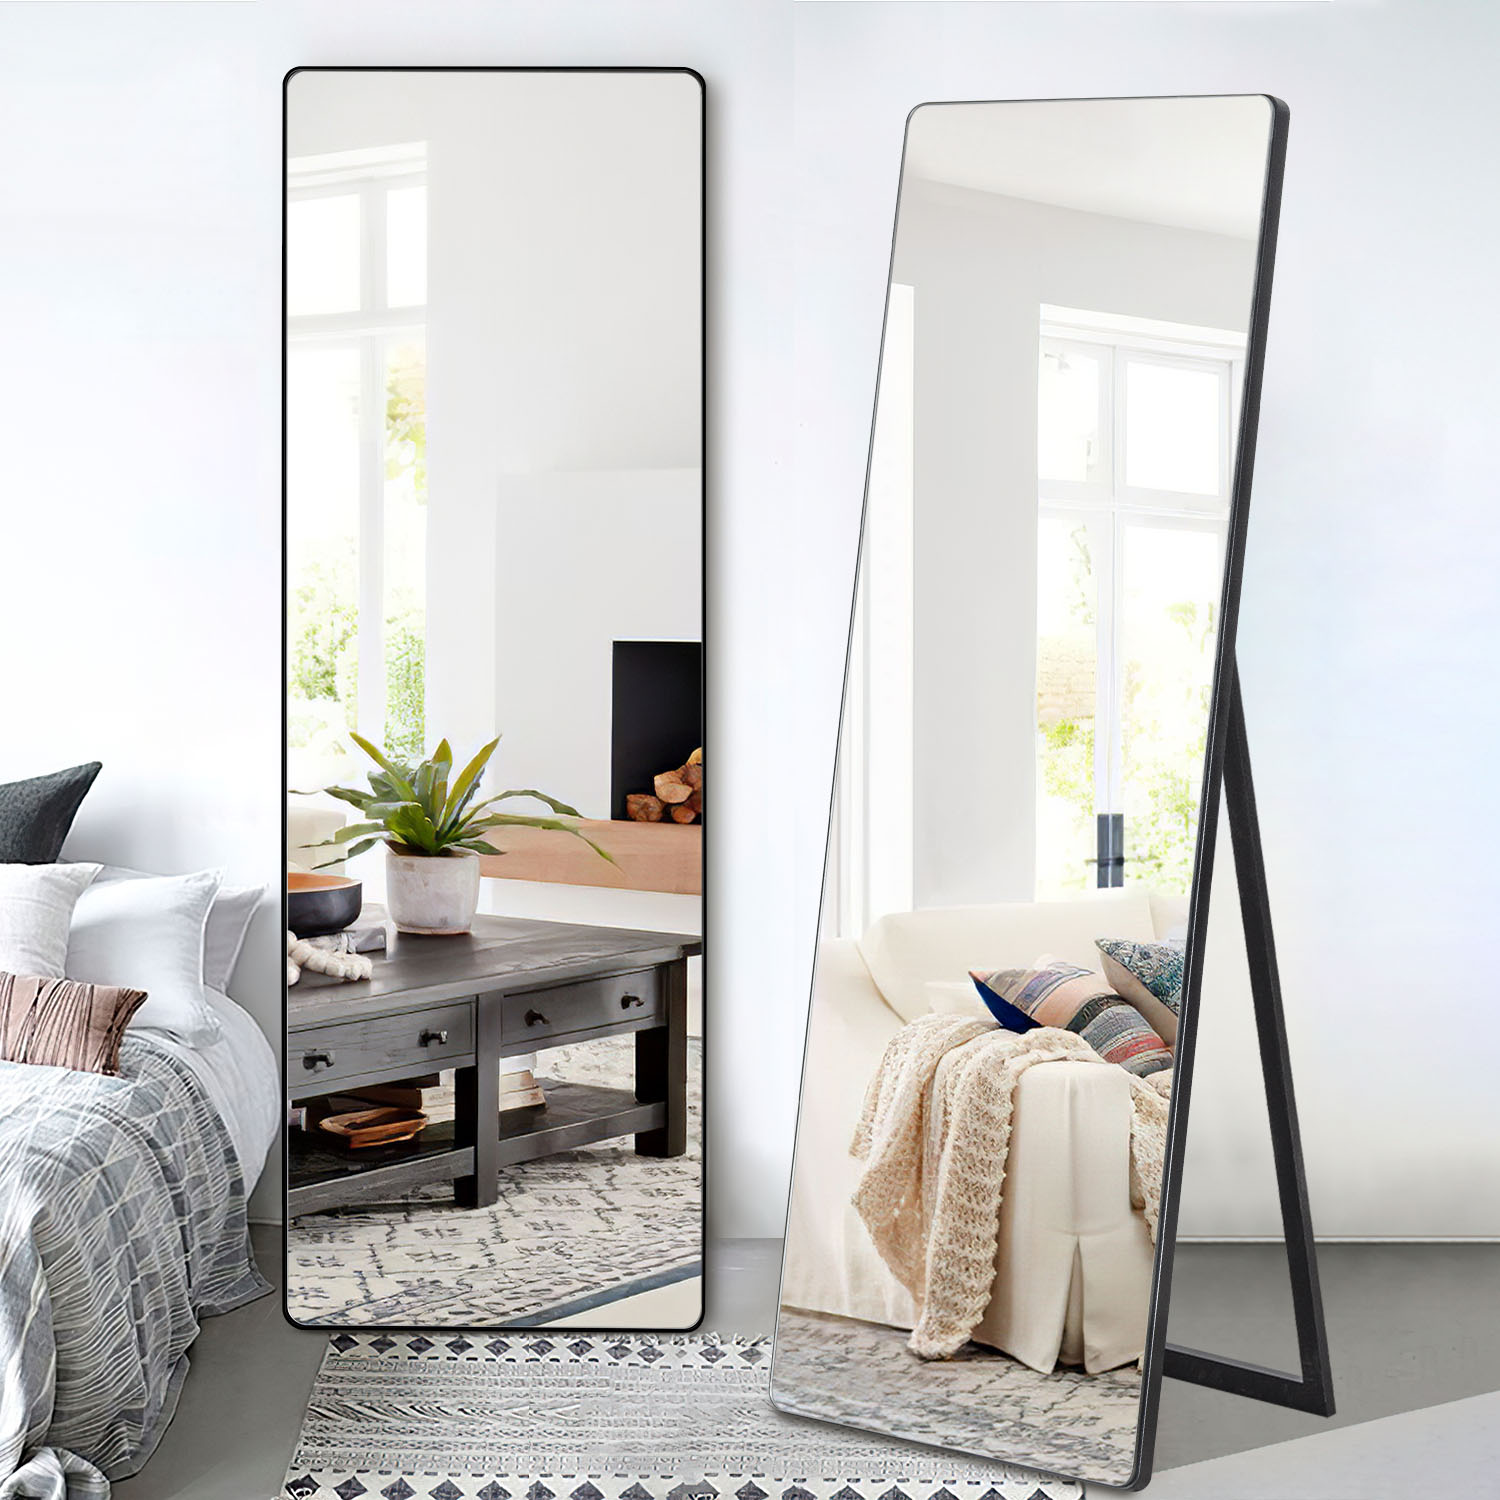 Neutype Full Length Mirror With Standing Holder Floor Mirror Large Wall Mounted Mirror Bedroom Mirror Dressing Mirror Wood Frame Black 65 X 22 Walmart Com Walmart Com